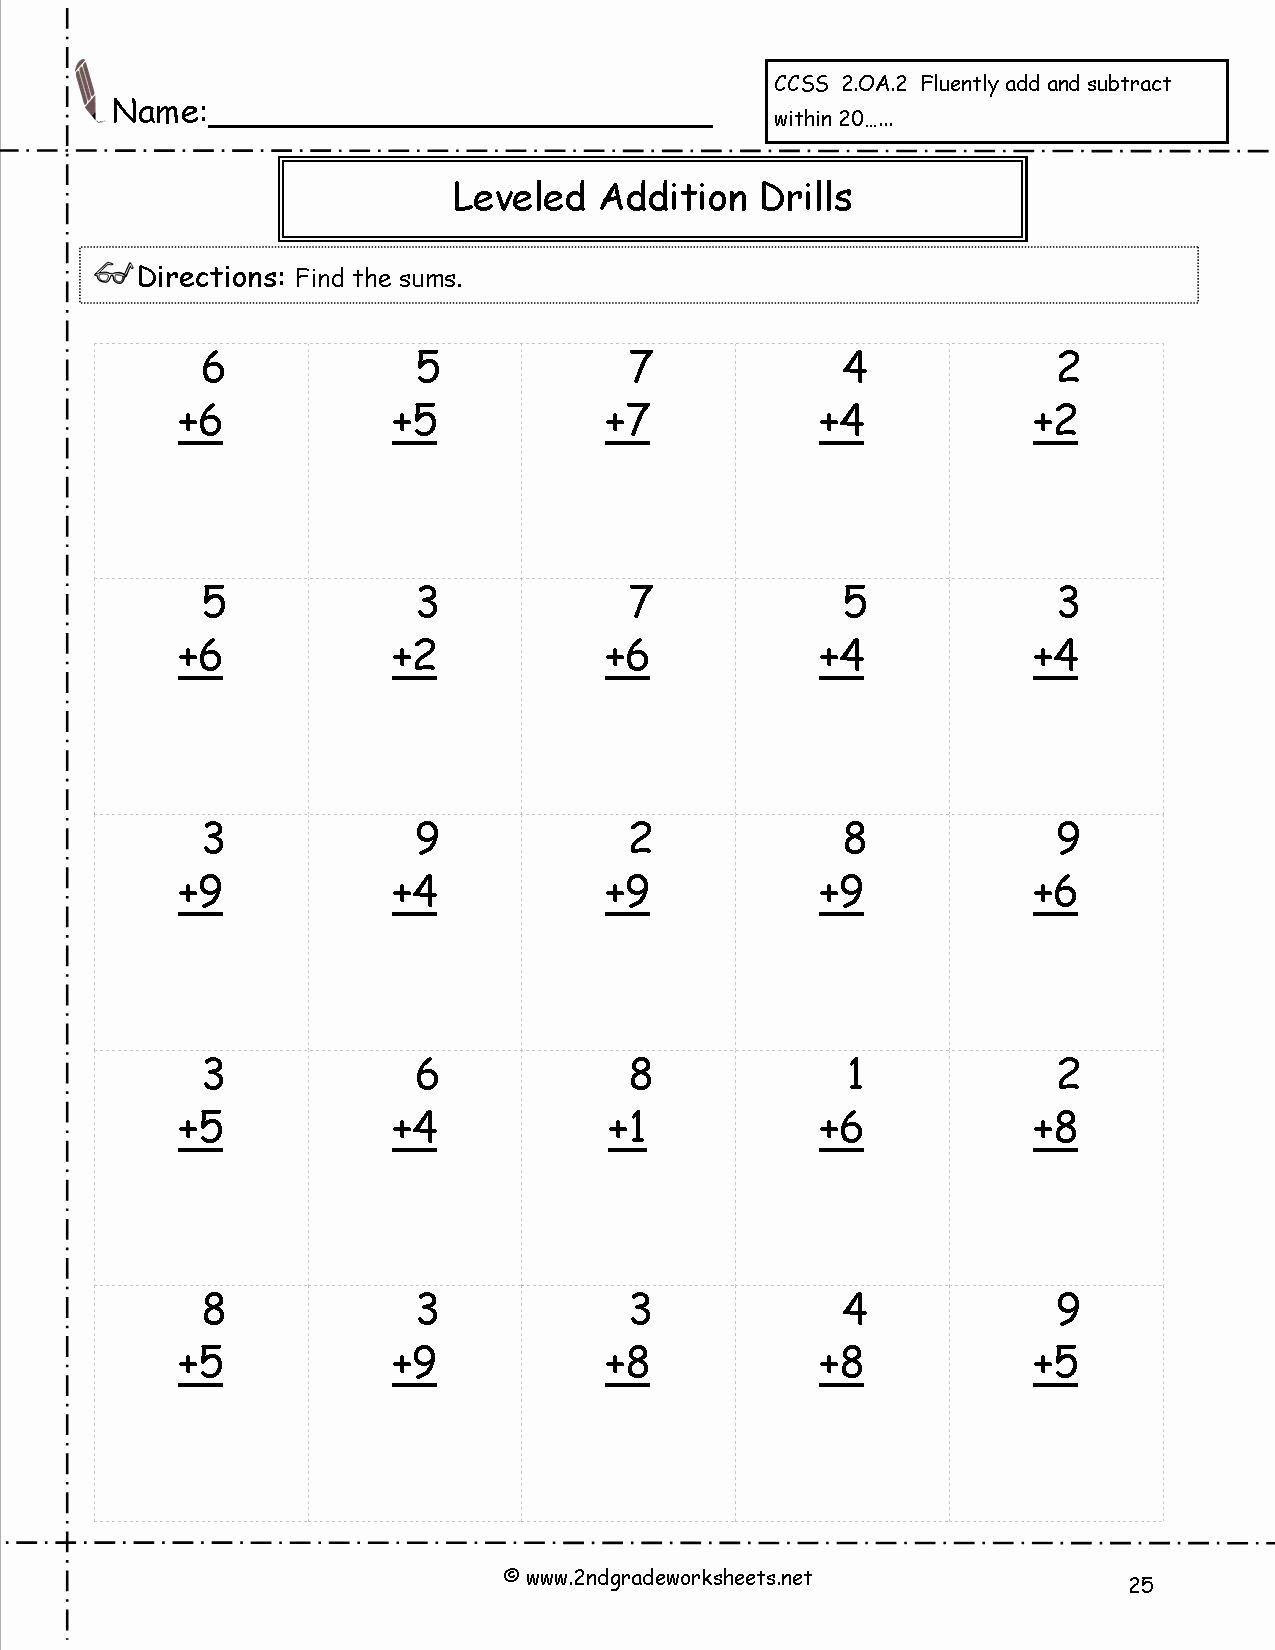 Maths Multiplication Worksheets for Grade 2 Awesome Math Worksheet Multiplication Worksheets for Grade 2 Free